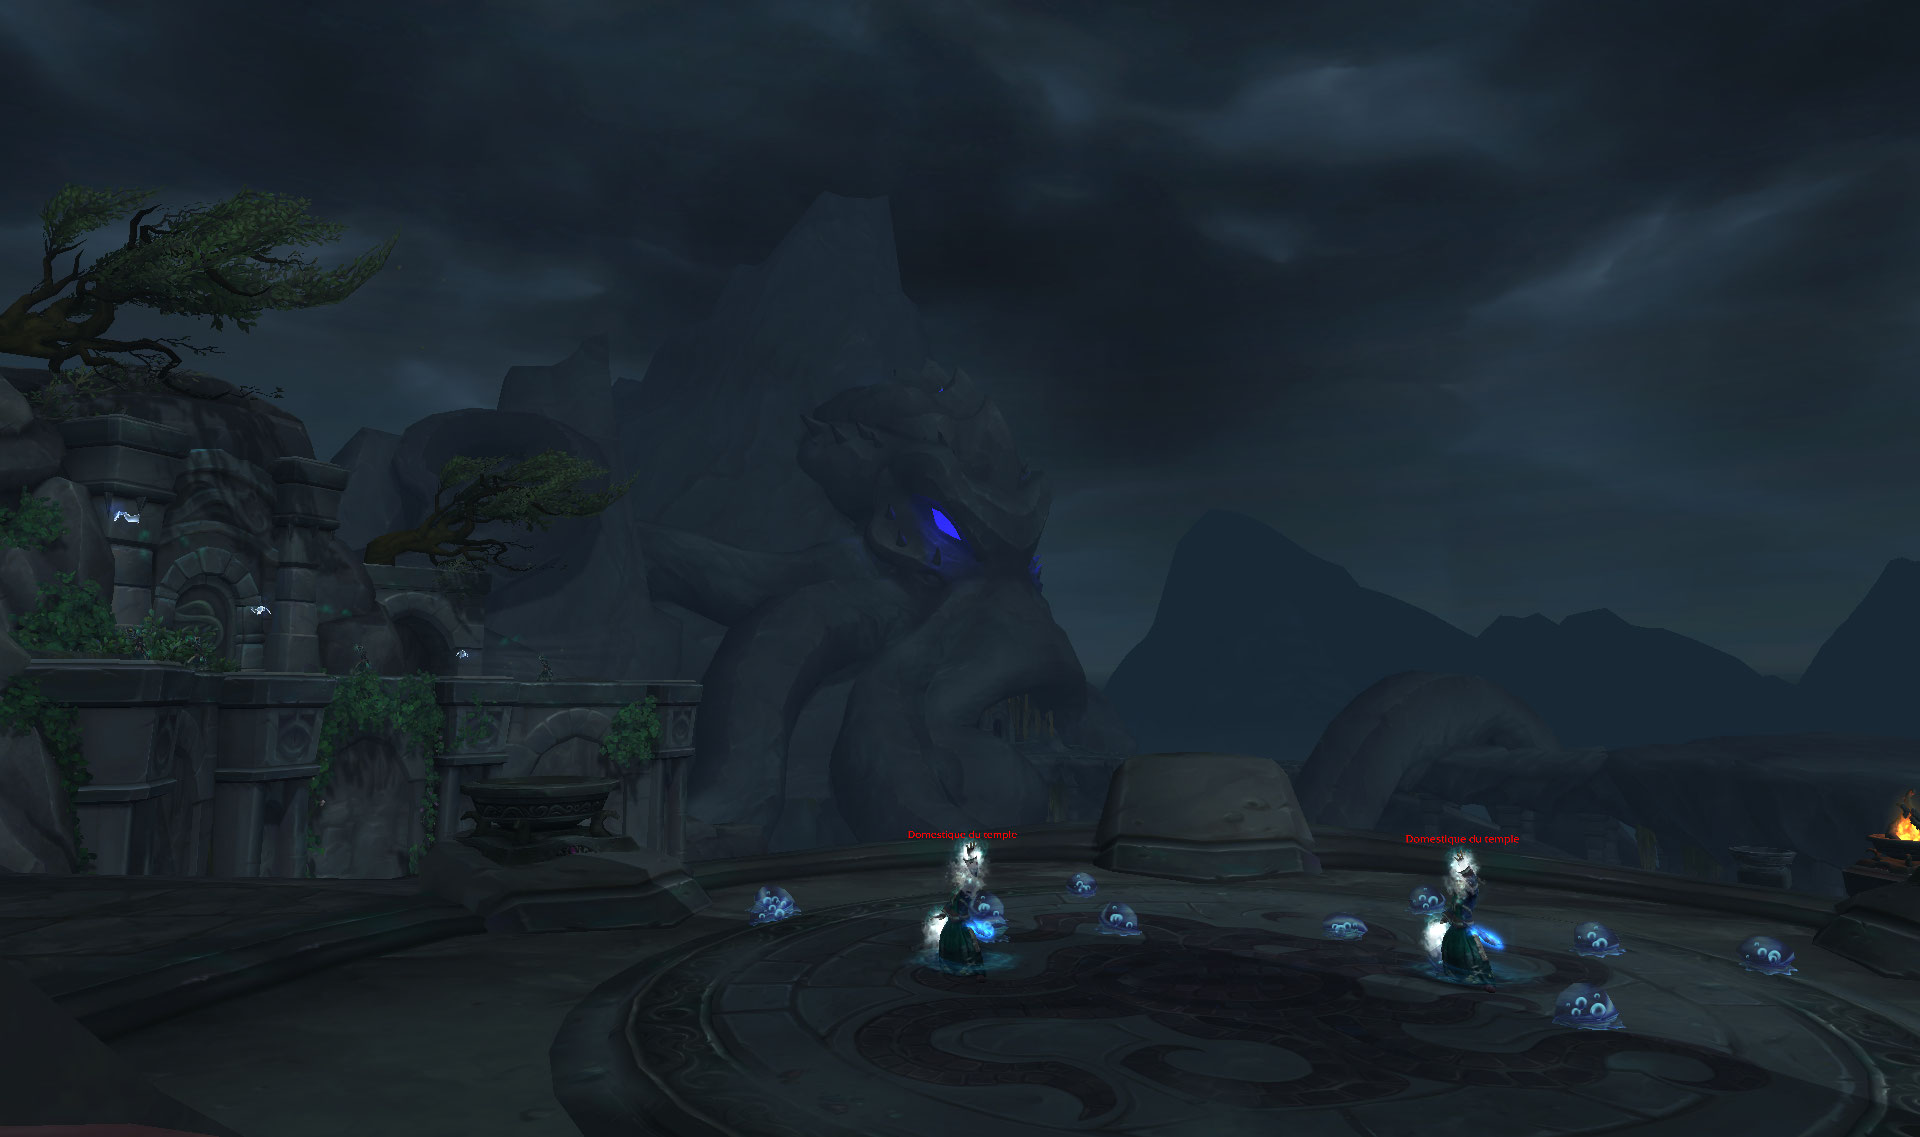 Screenshot du donjon Sanctuaire des Tempêtes dans World of Warcraft.